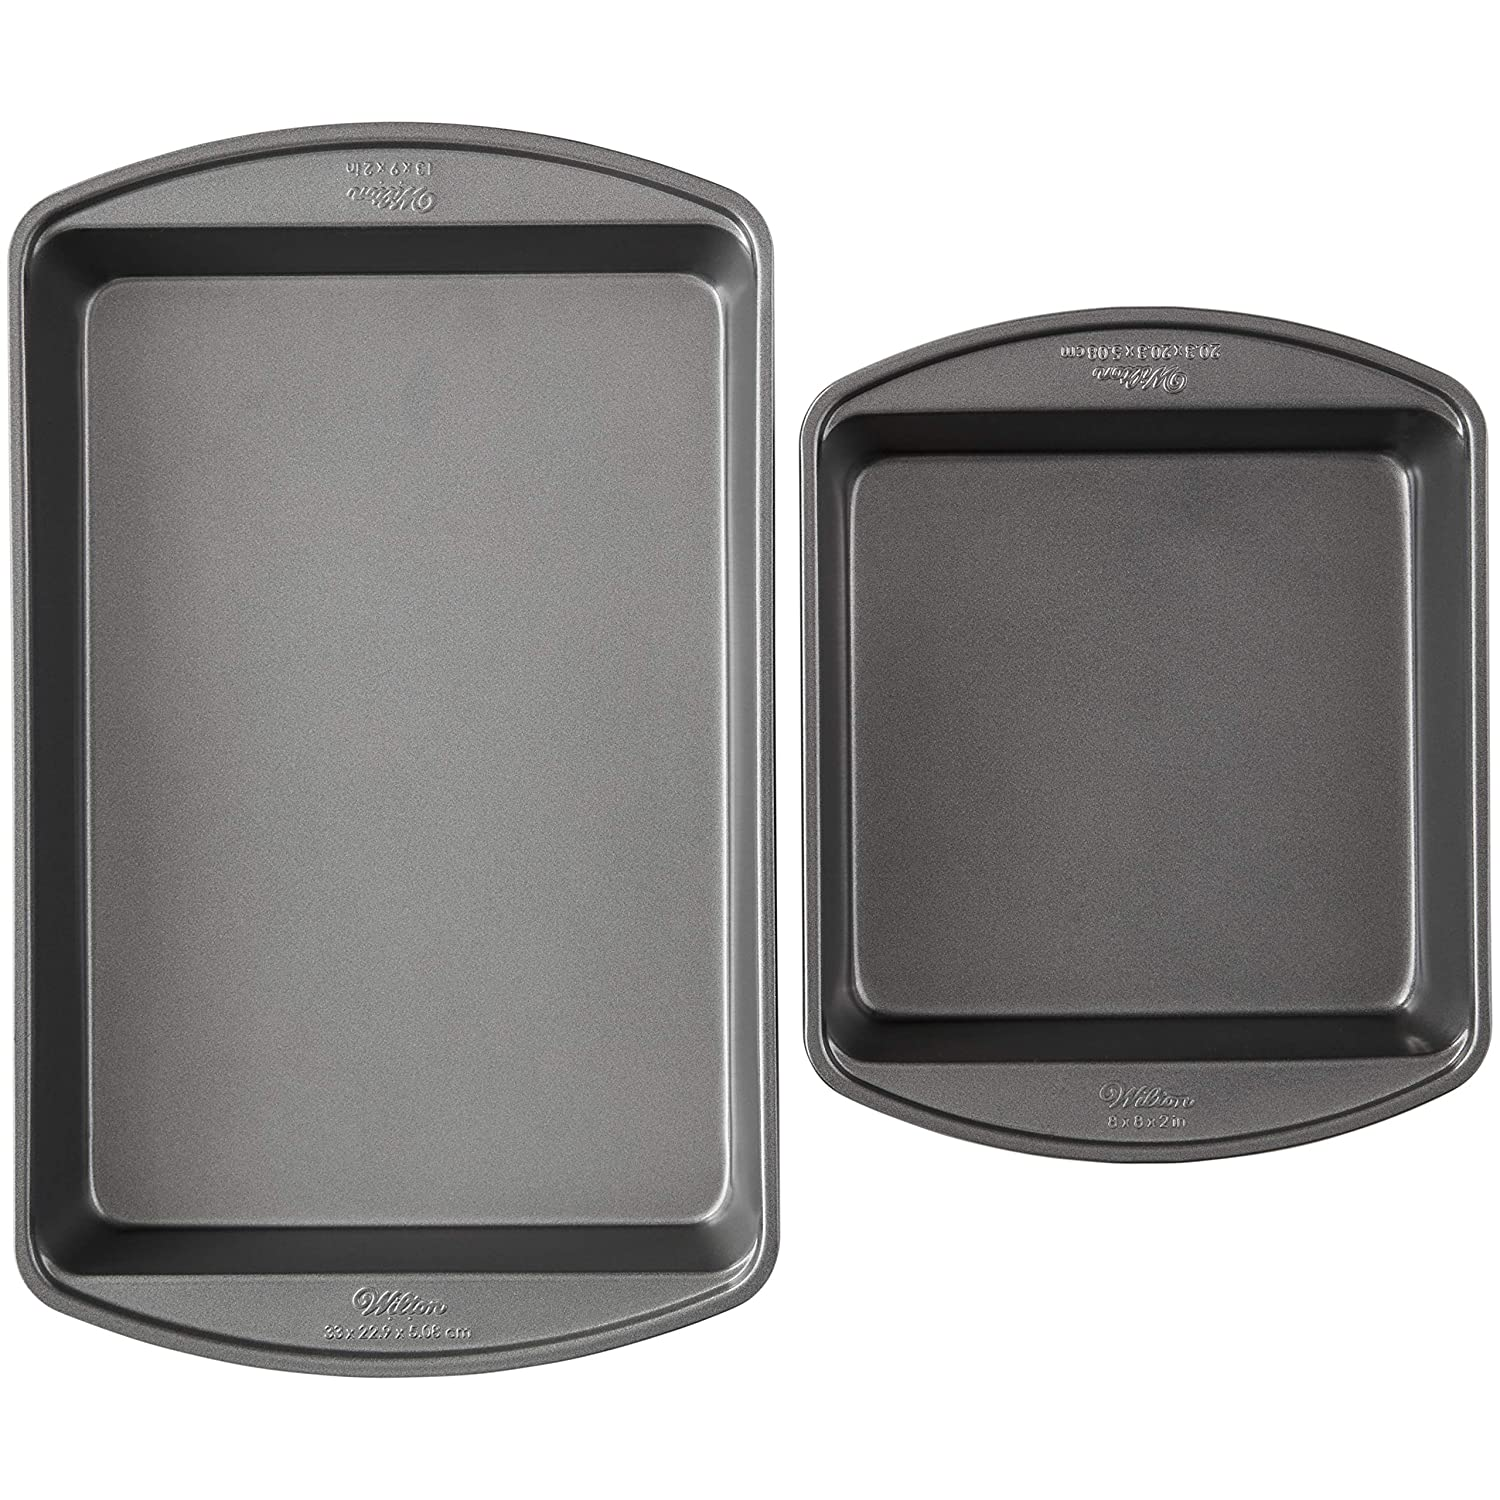 Wilton Perfect Results Premium Non-Stick Oblong and Square Cake Pan Set, 2-Piece